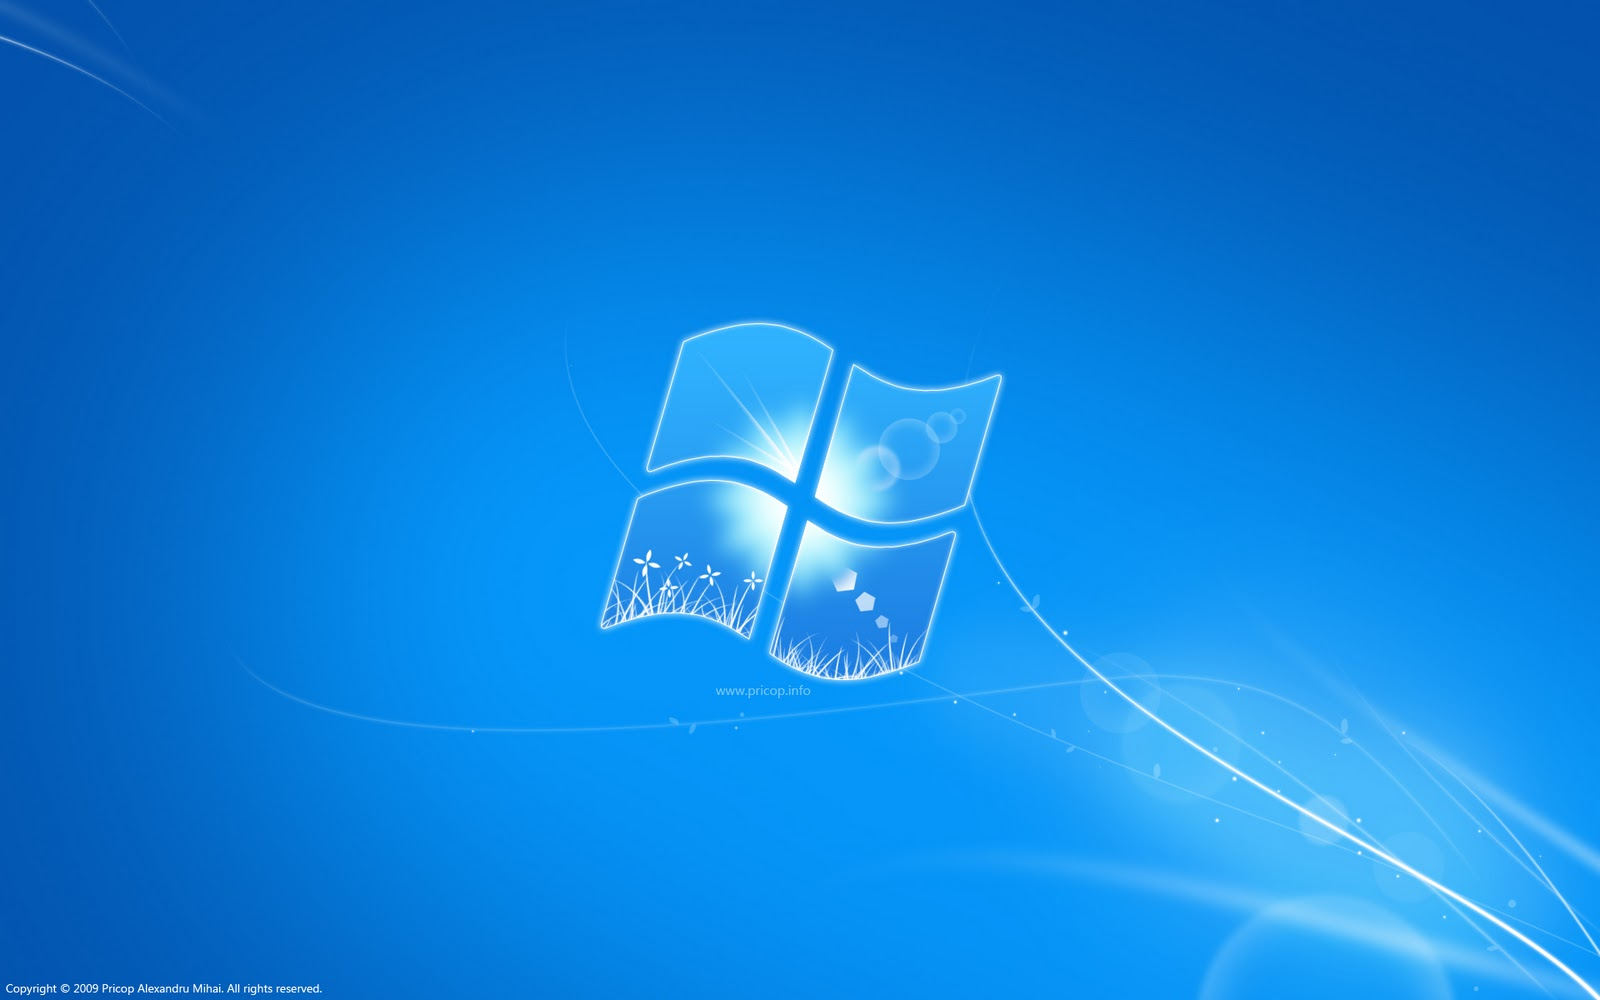 Windows 8 Wallpapers Release: Windows8Wallpapers: Windows8 Wallpapers Free Download